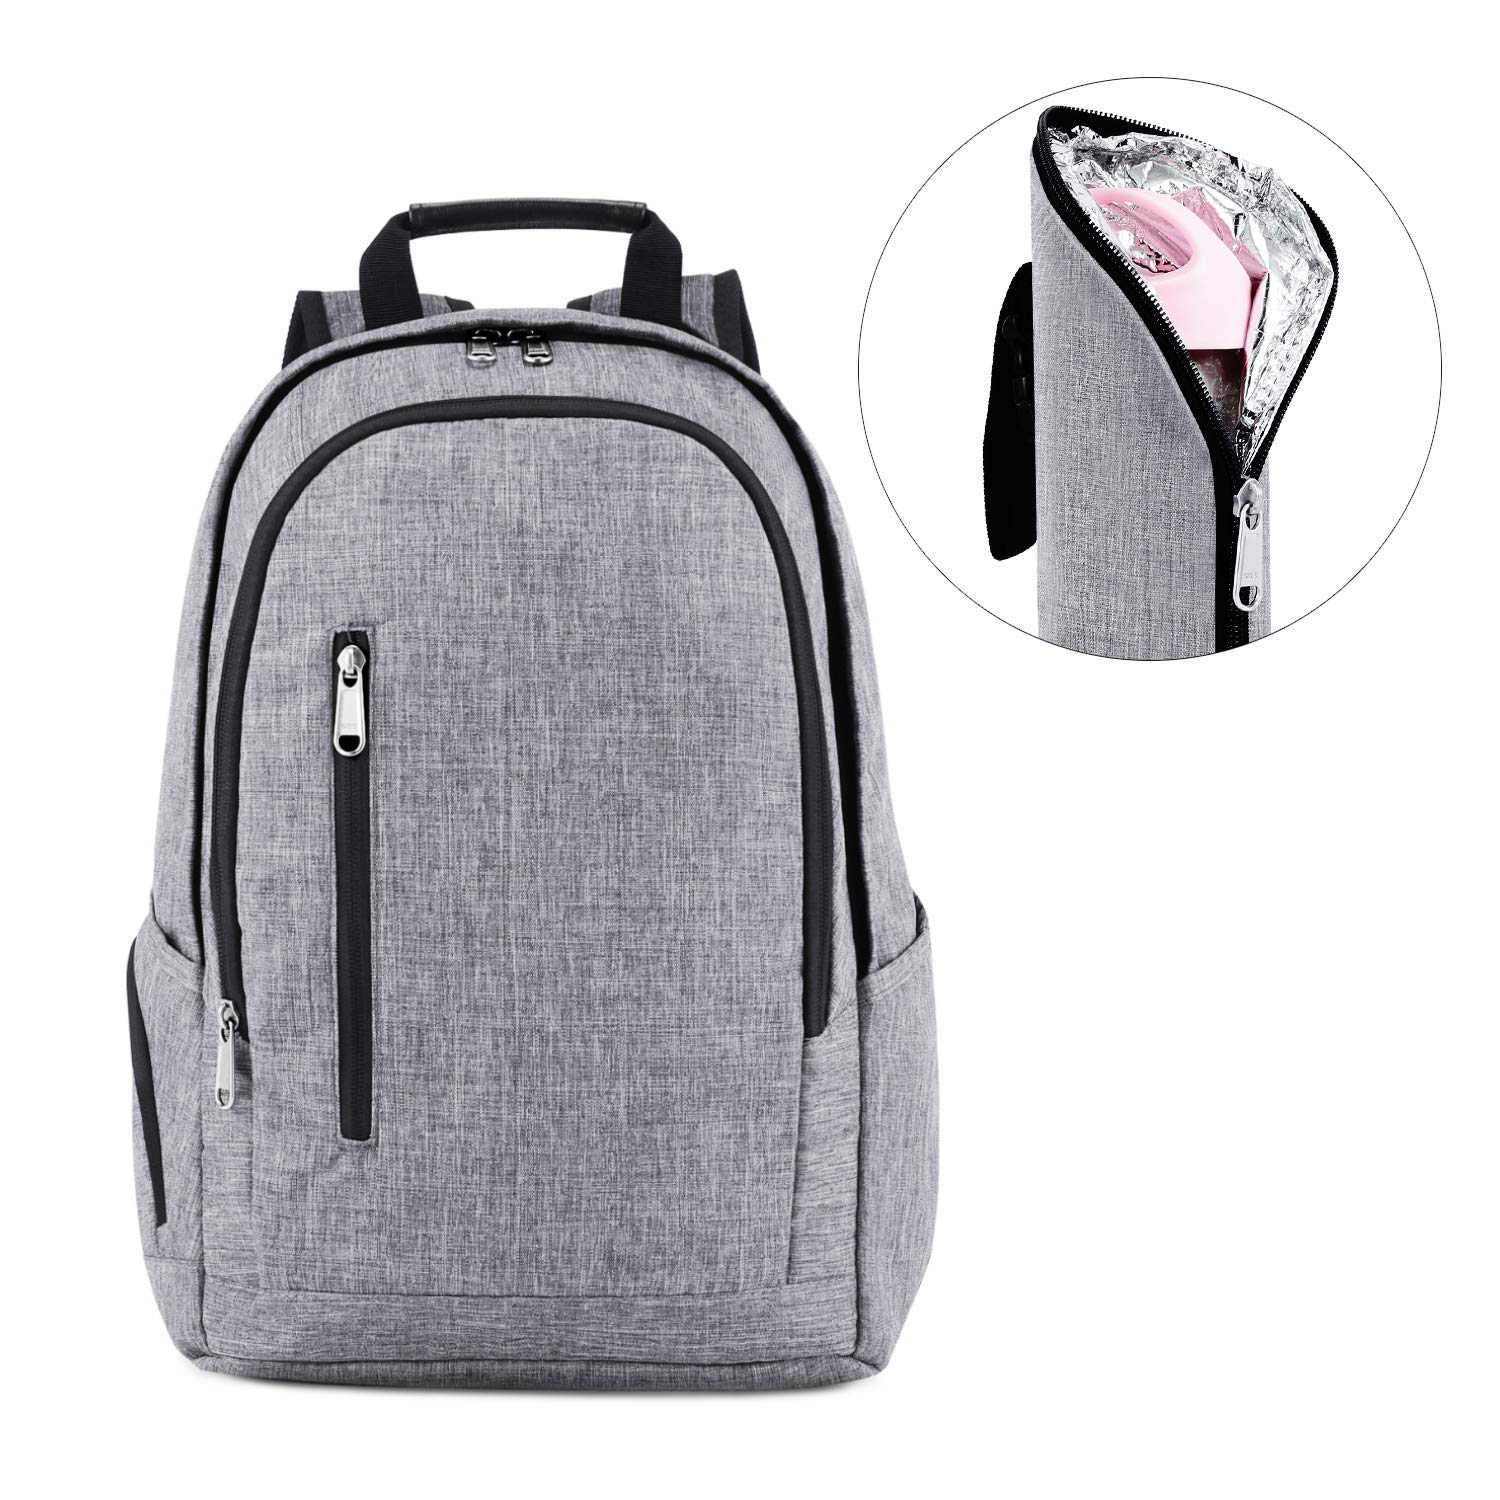 Kattee Diaper Backpack Multipocket Nappy Bag with Changing Pad & Insulated Bottle Holder